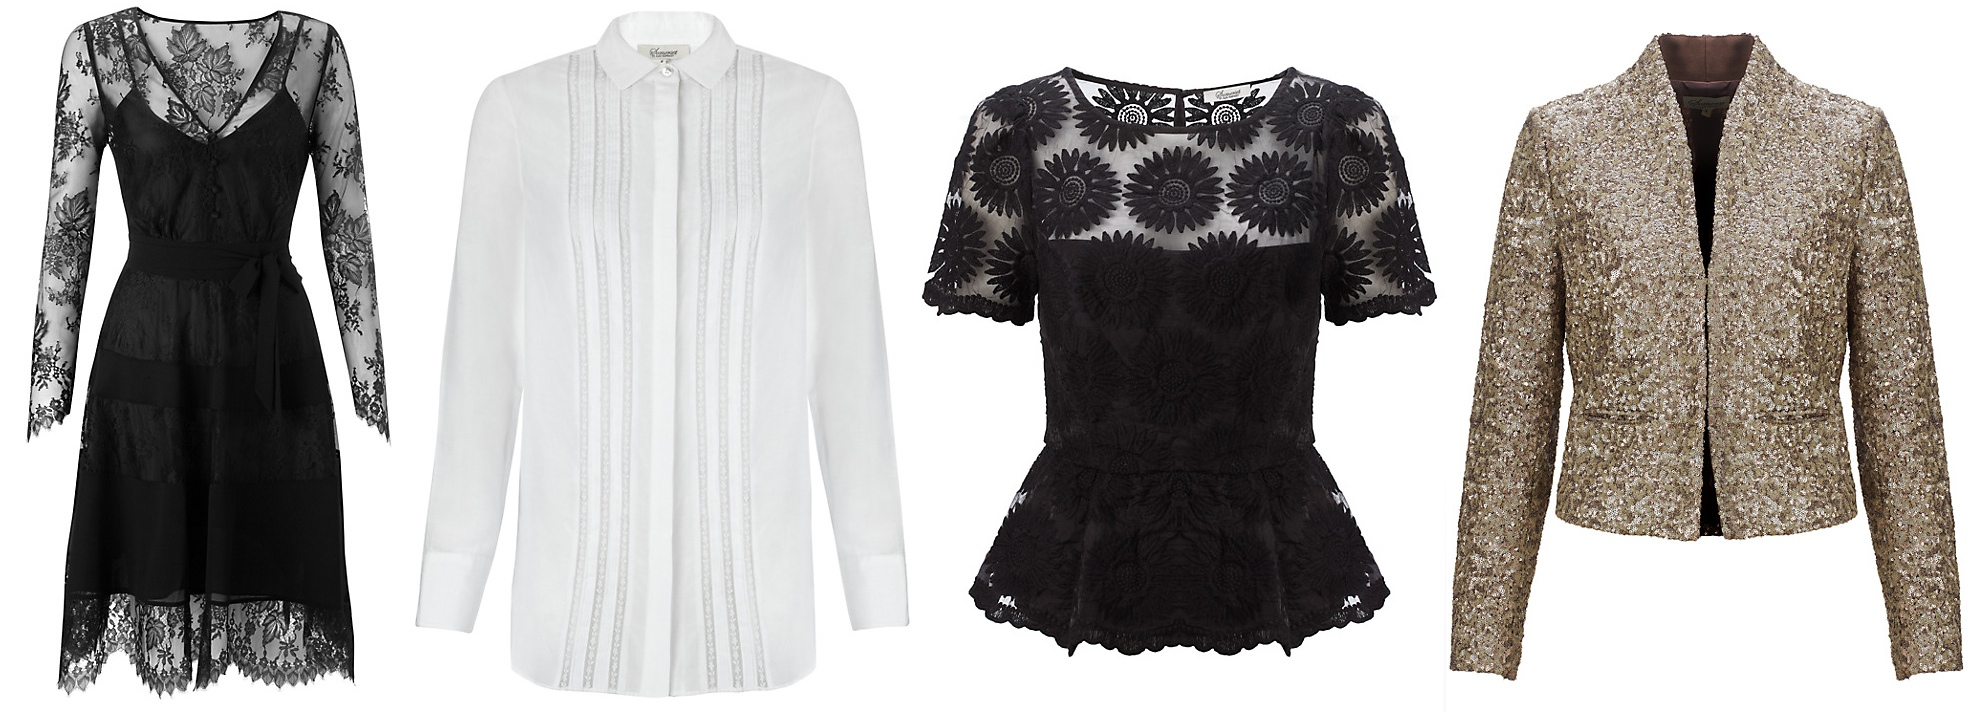 Somerset by Alice Temperley at John Lewis